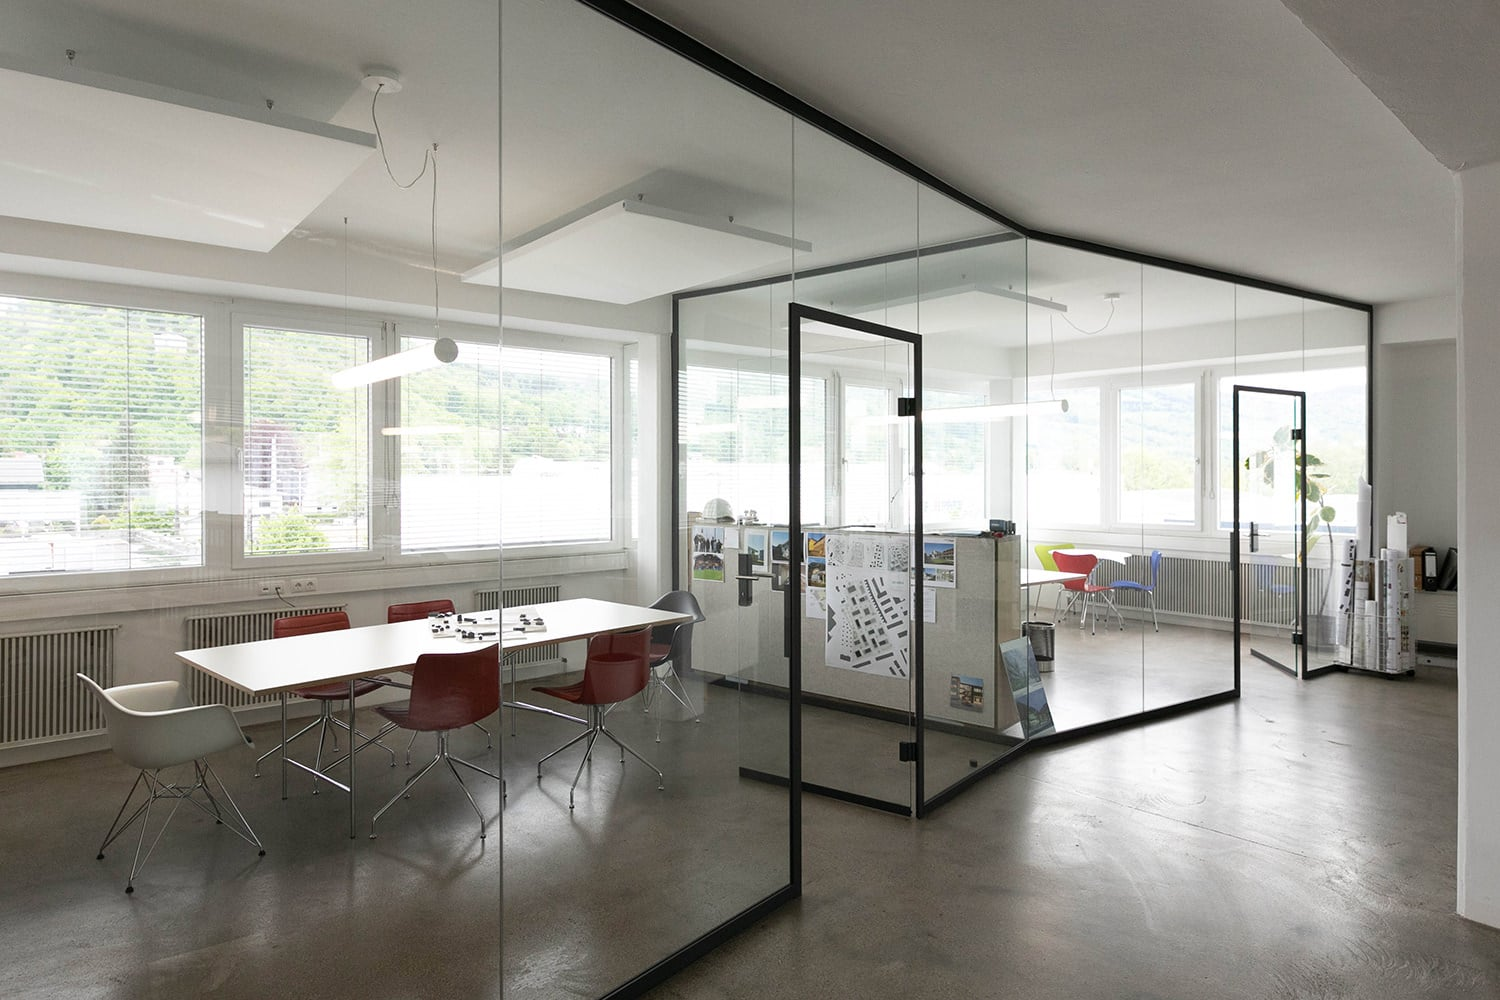 Office, Atelier Schwarzenbacher Struber Architekten